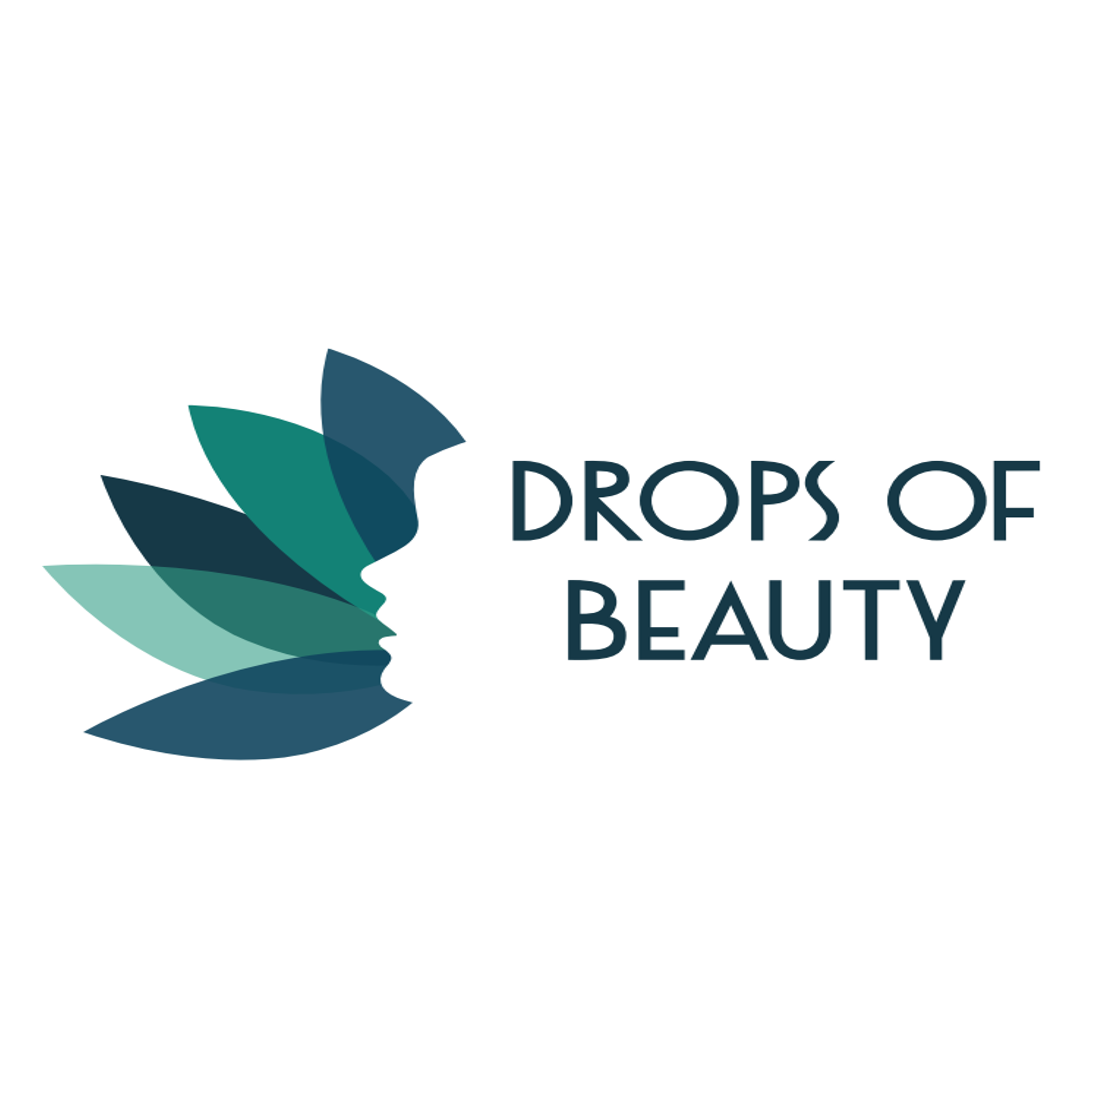 Drops of Beauty Anti-Aging Medical Spa